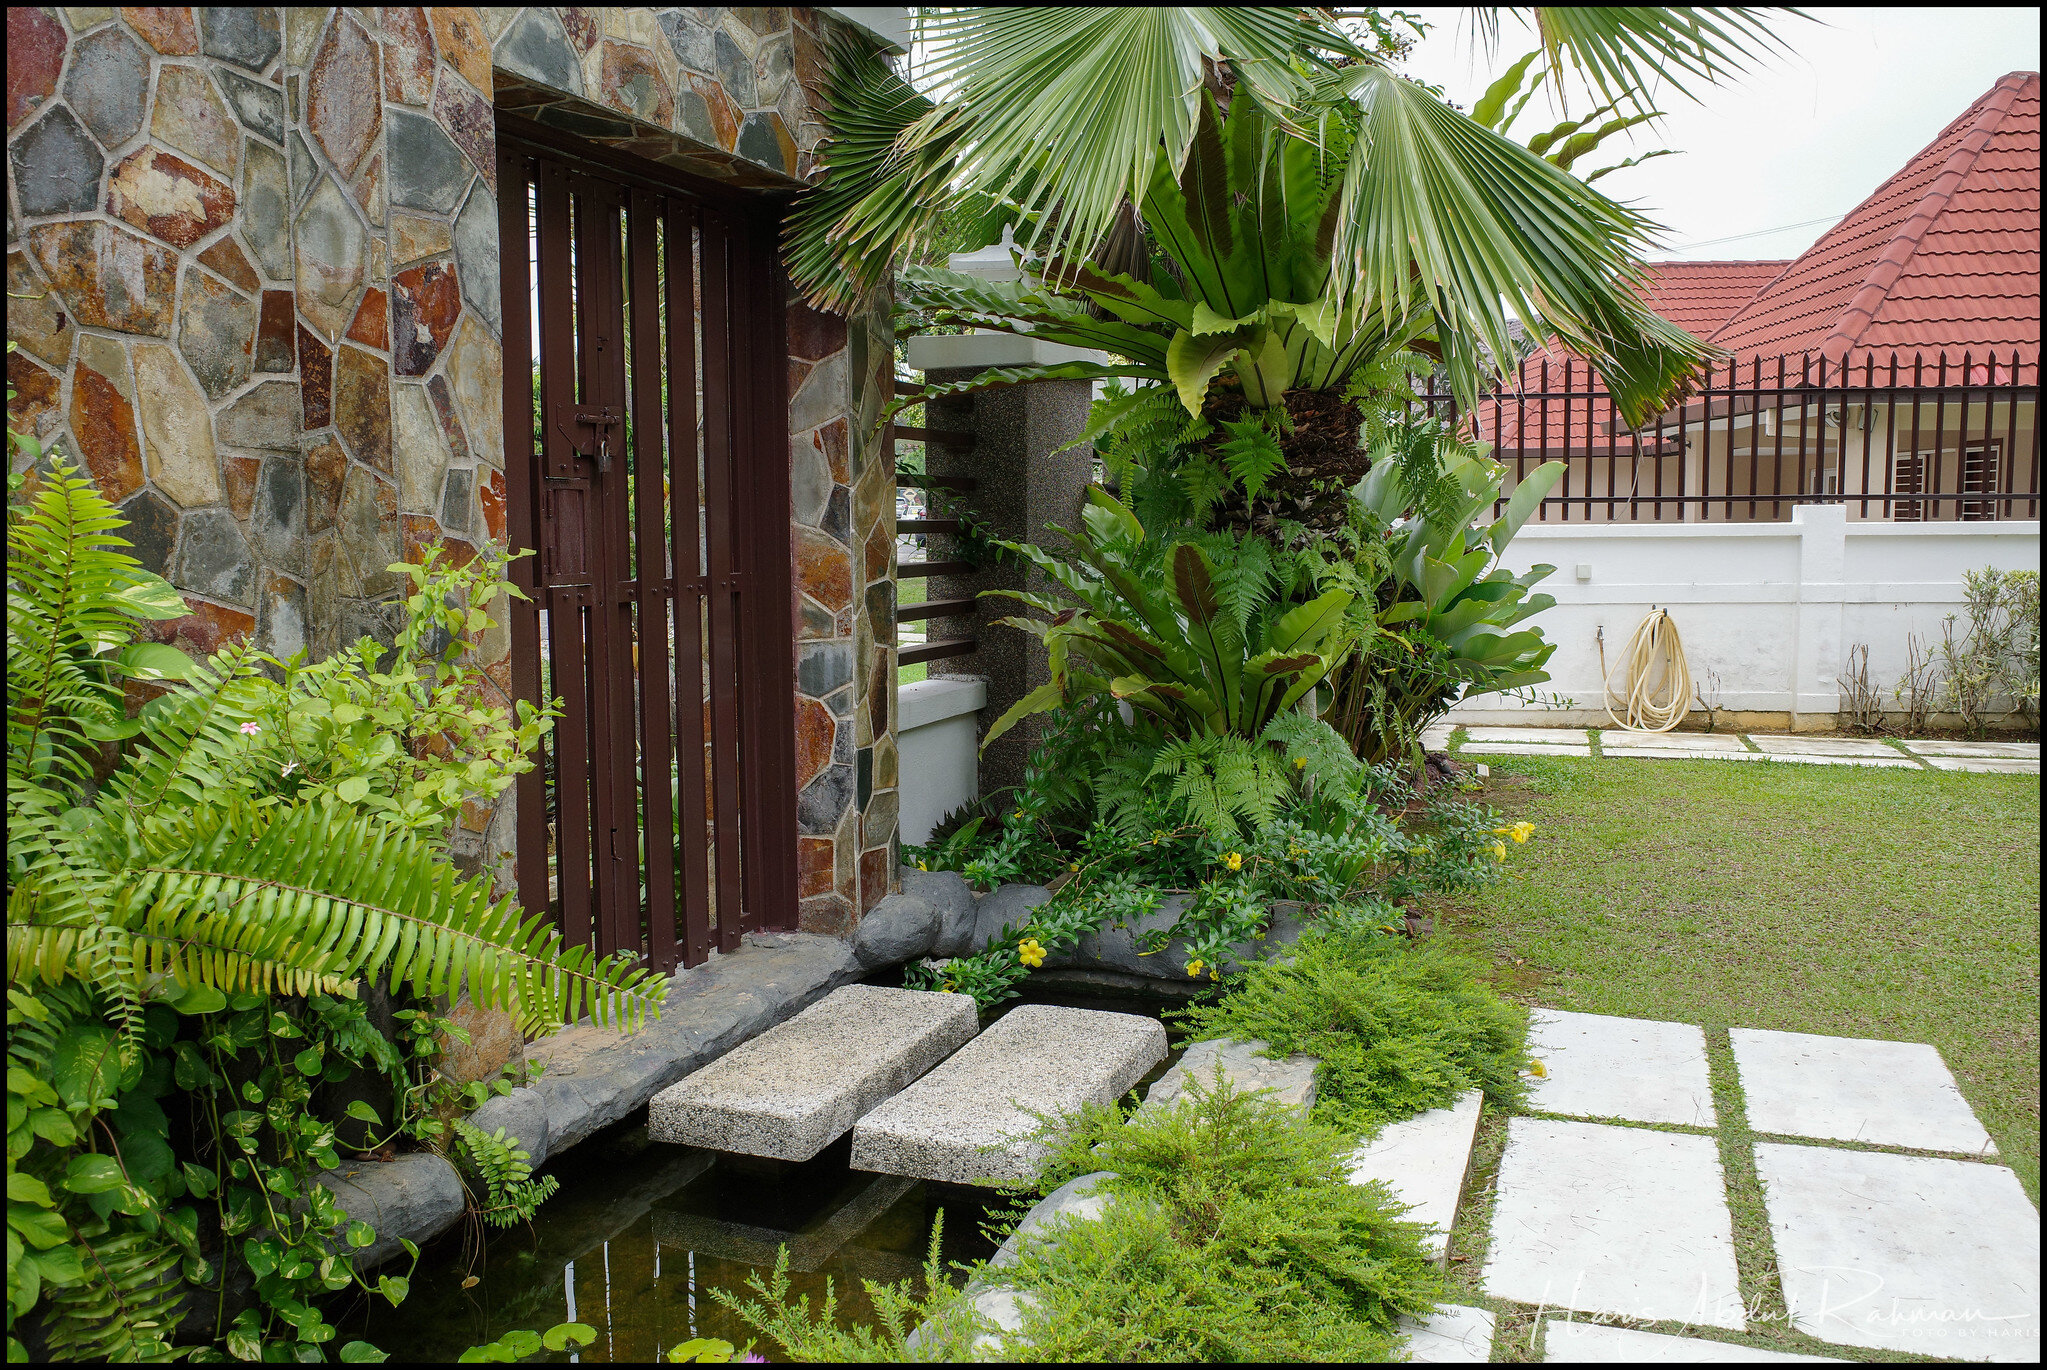 A water feature by the front gate